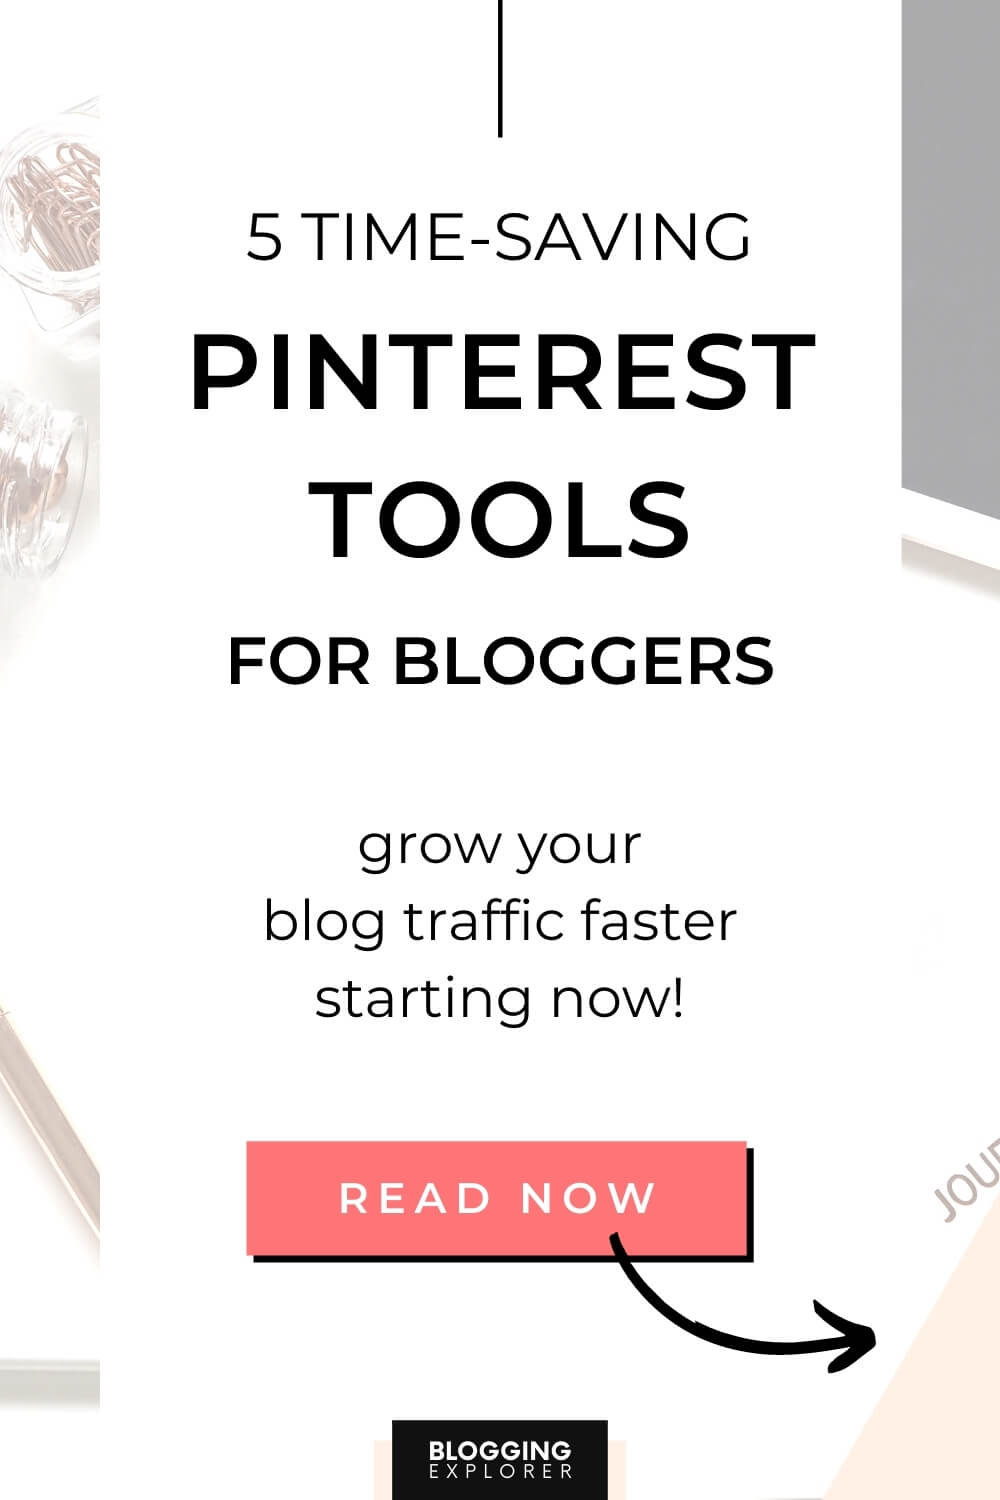 The best Pinterest tools for bloggers to grow blog traffic faster - Blogging Explorer